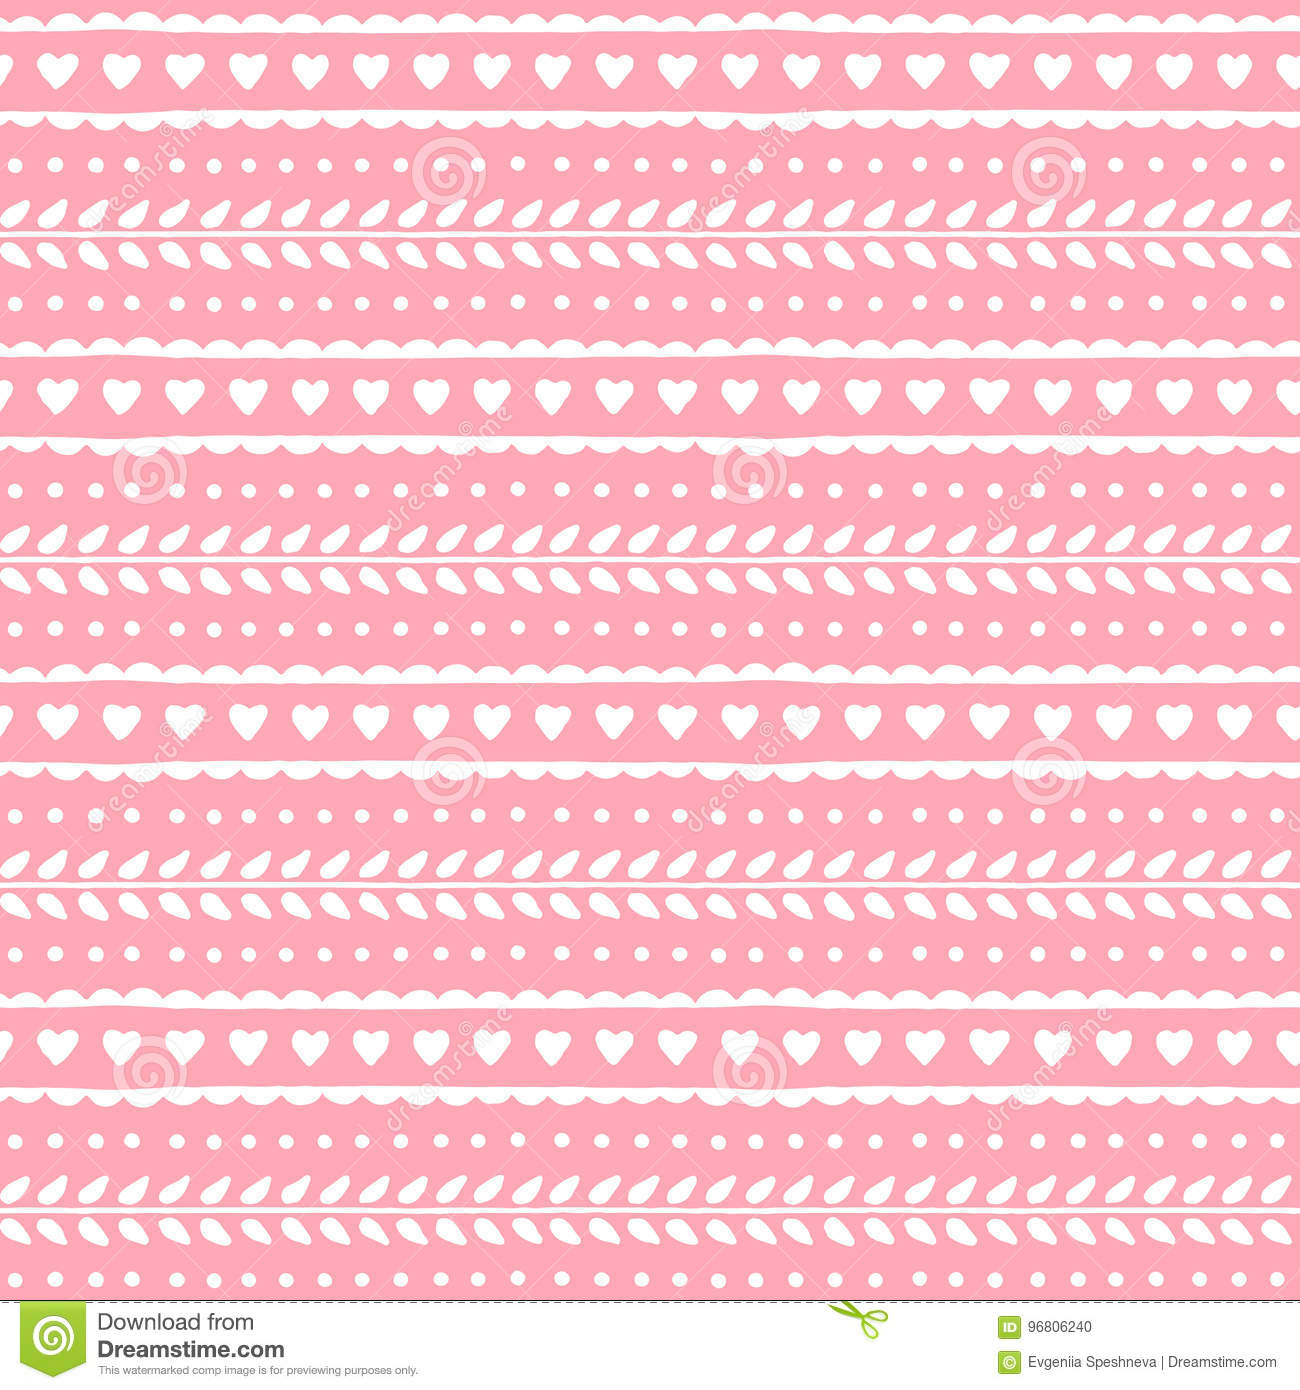 Cute lovely seamless pattern for valentine or wedding design. Hearts and leaves on soft pink background. Vector texture.